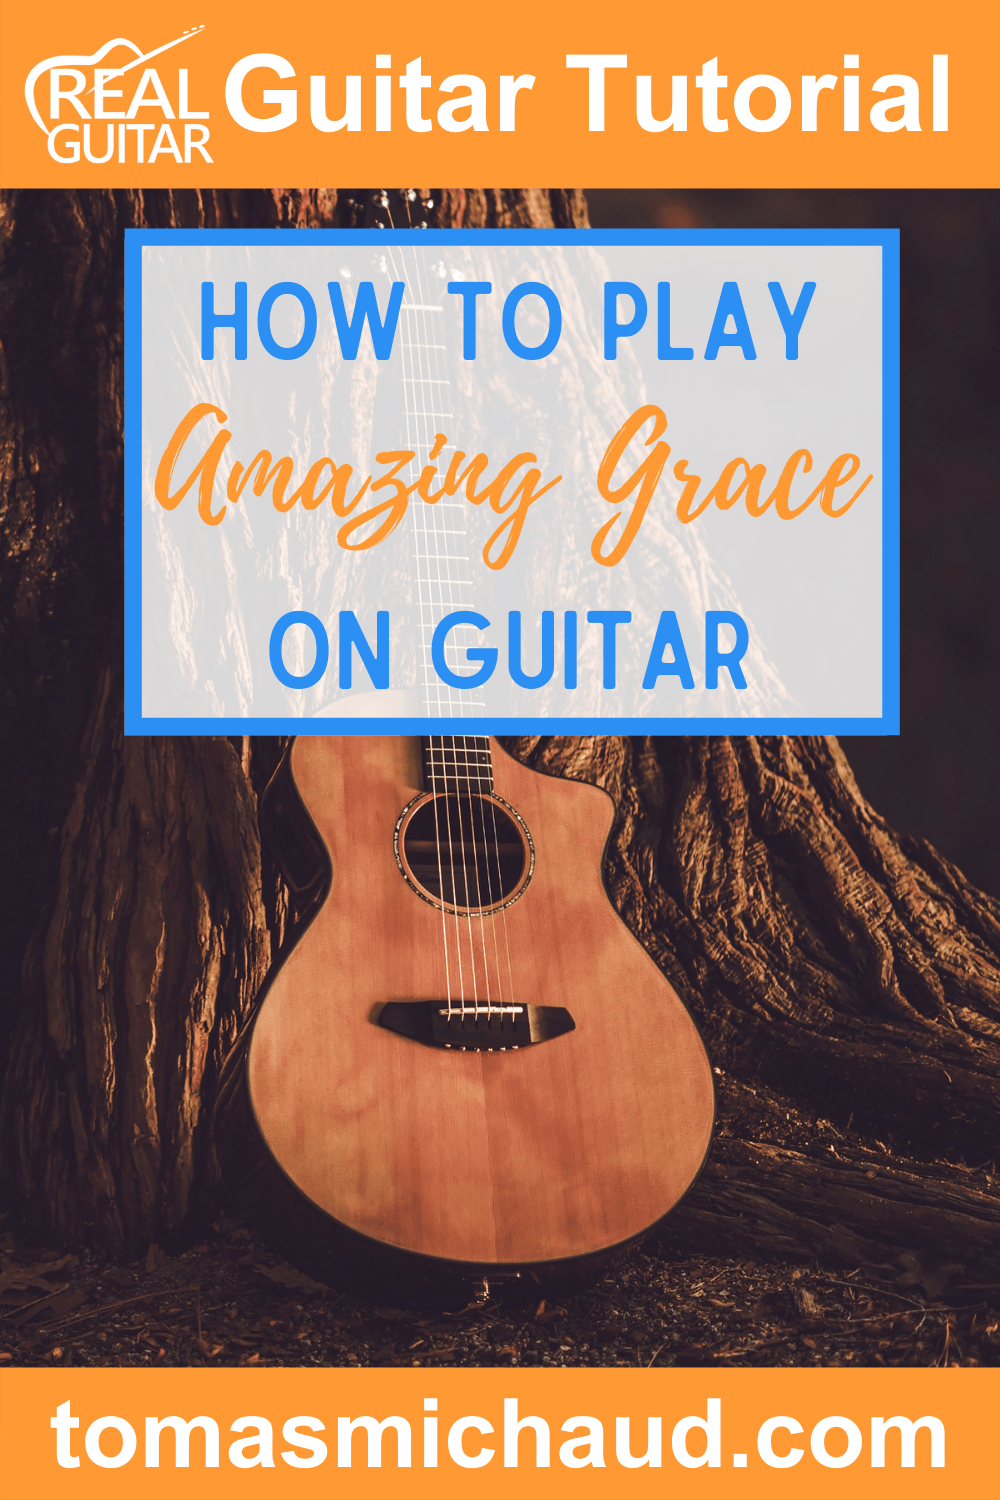 How to Play Amazing Grace on Guitar